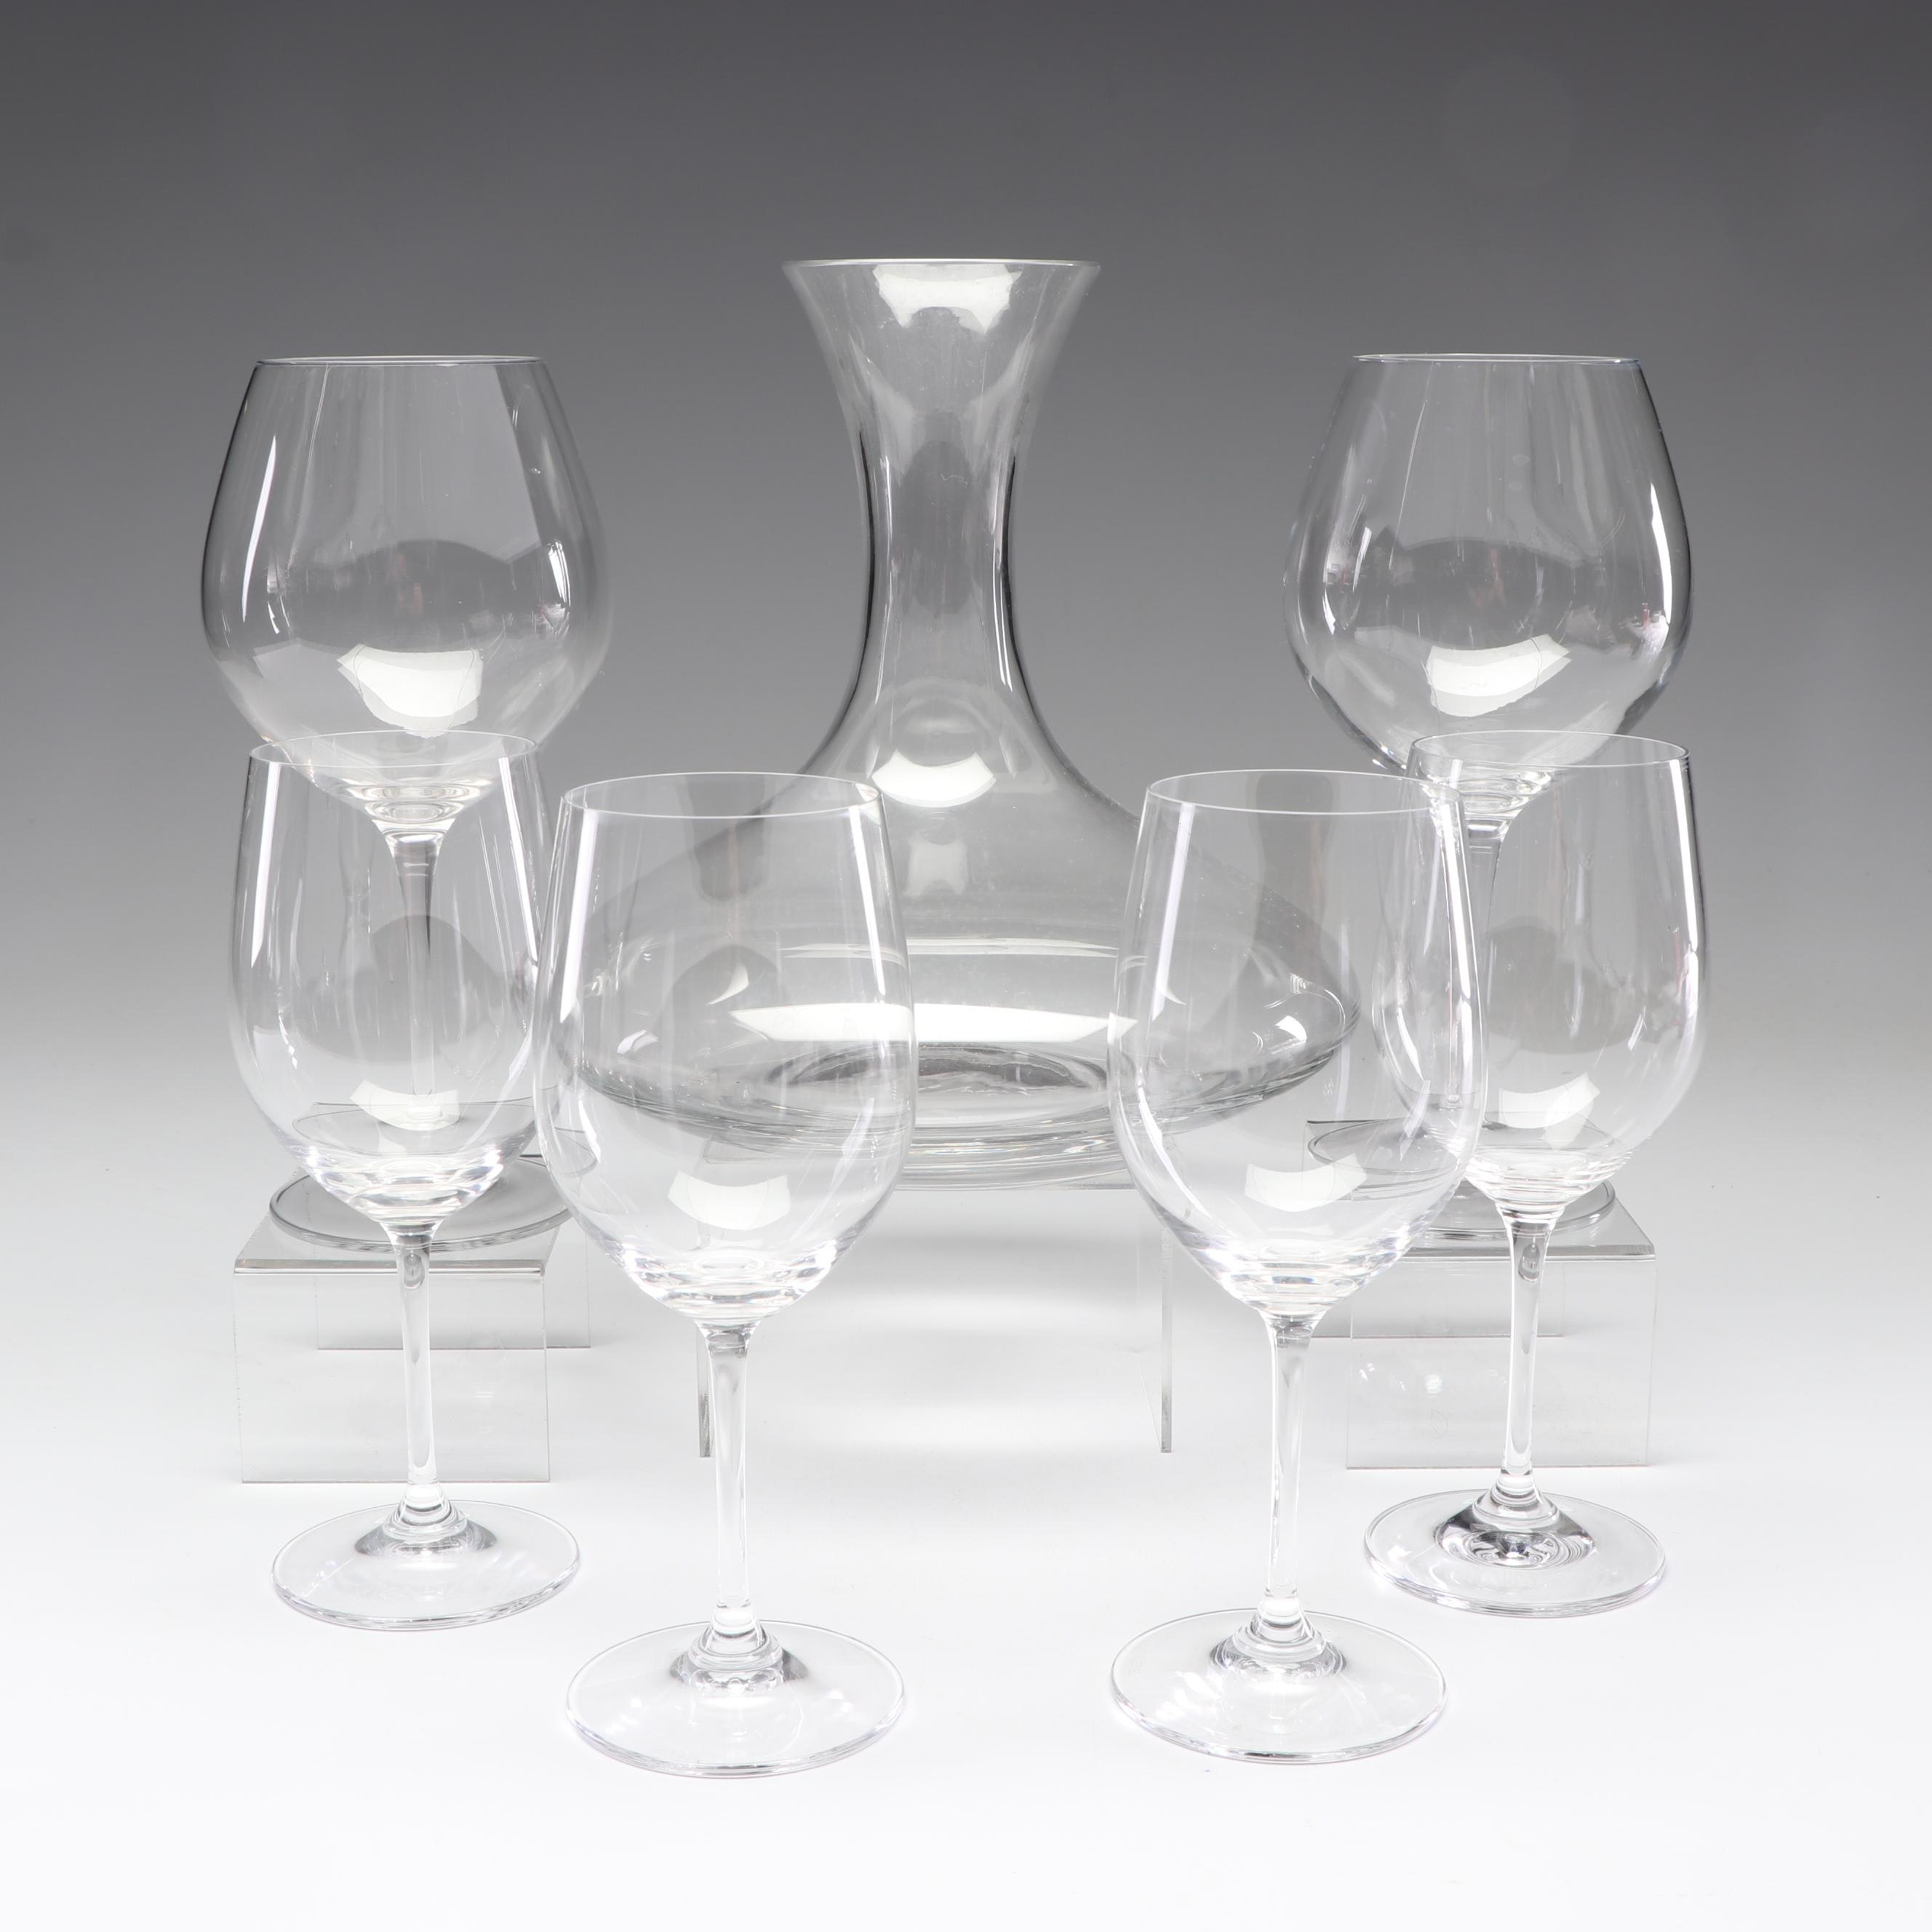 Crystal Wine Glasses and Glass Decanter